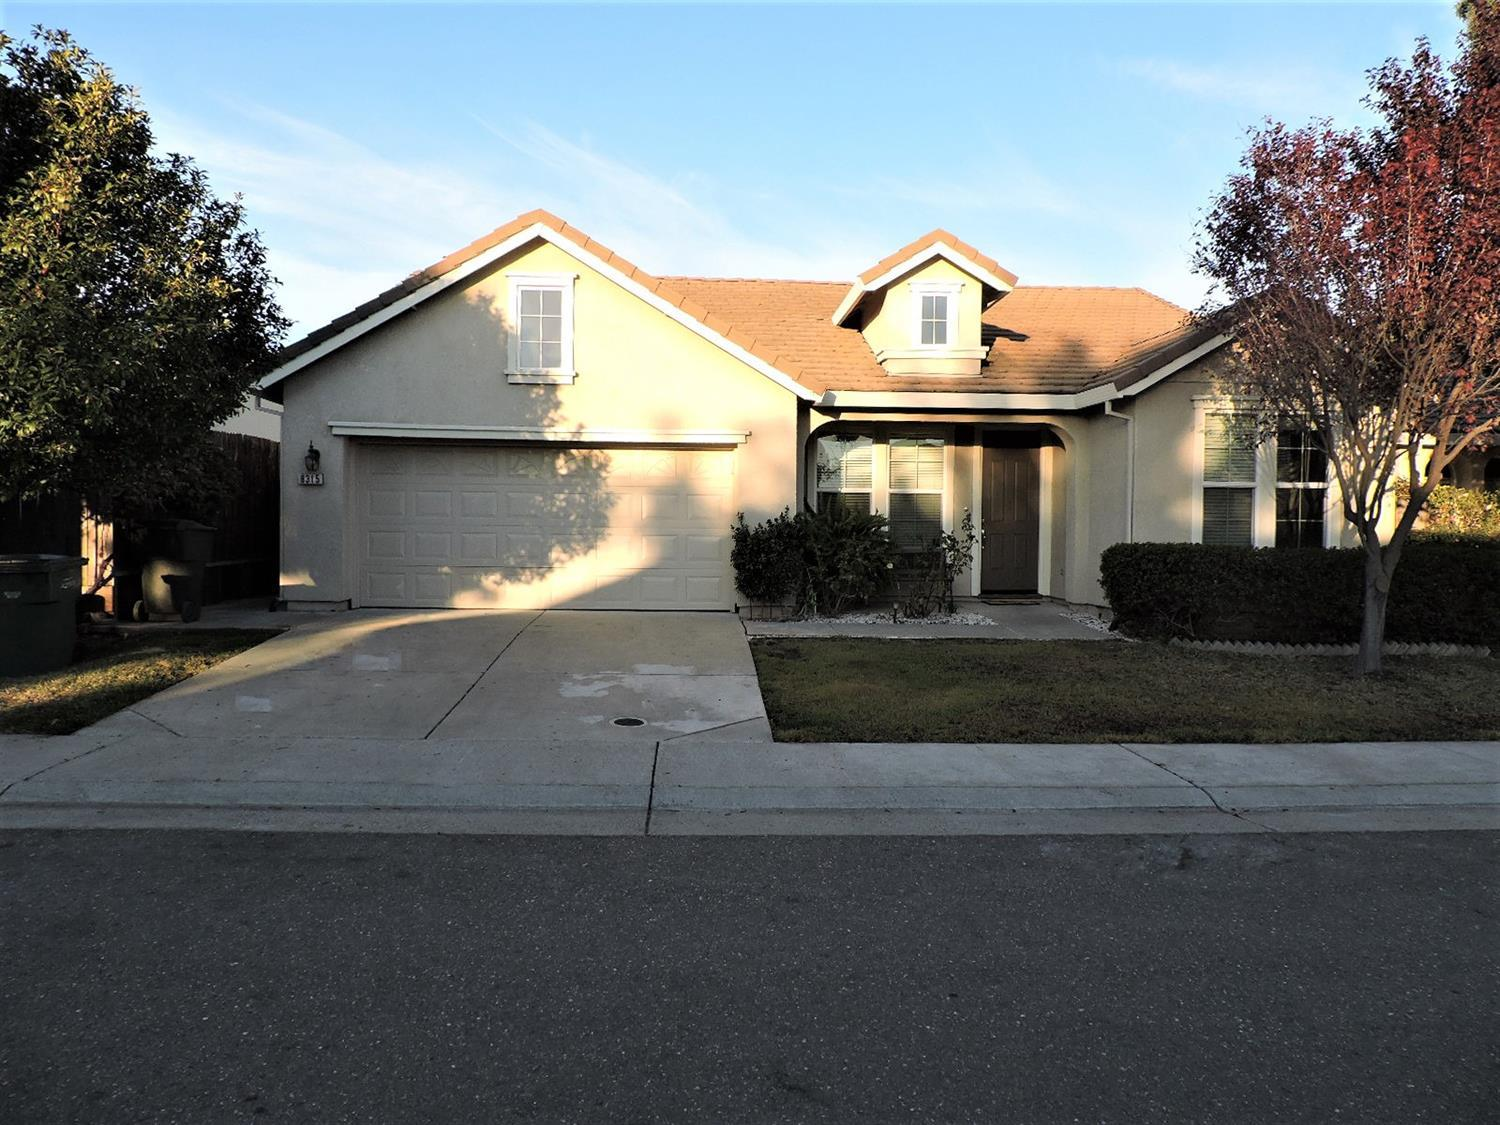 recovery homes in californias antelope valley essay The golfer living in antelope rental homes will be delighted with several golf courses in the vicinity, including antelope greens, cherry island and lawrence links narrow your search by price range, explore property details and check availability of antelope rental homes on rentalscom.